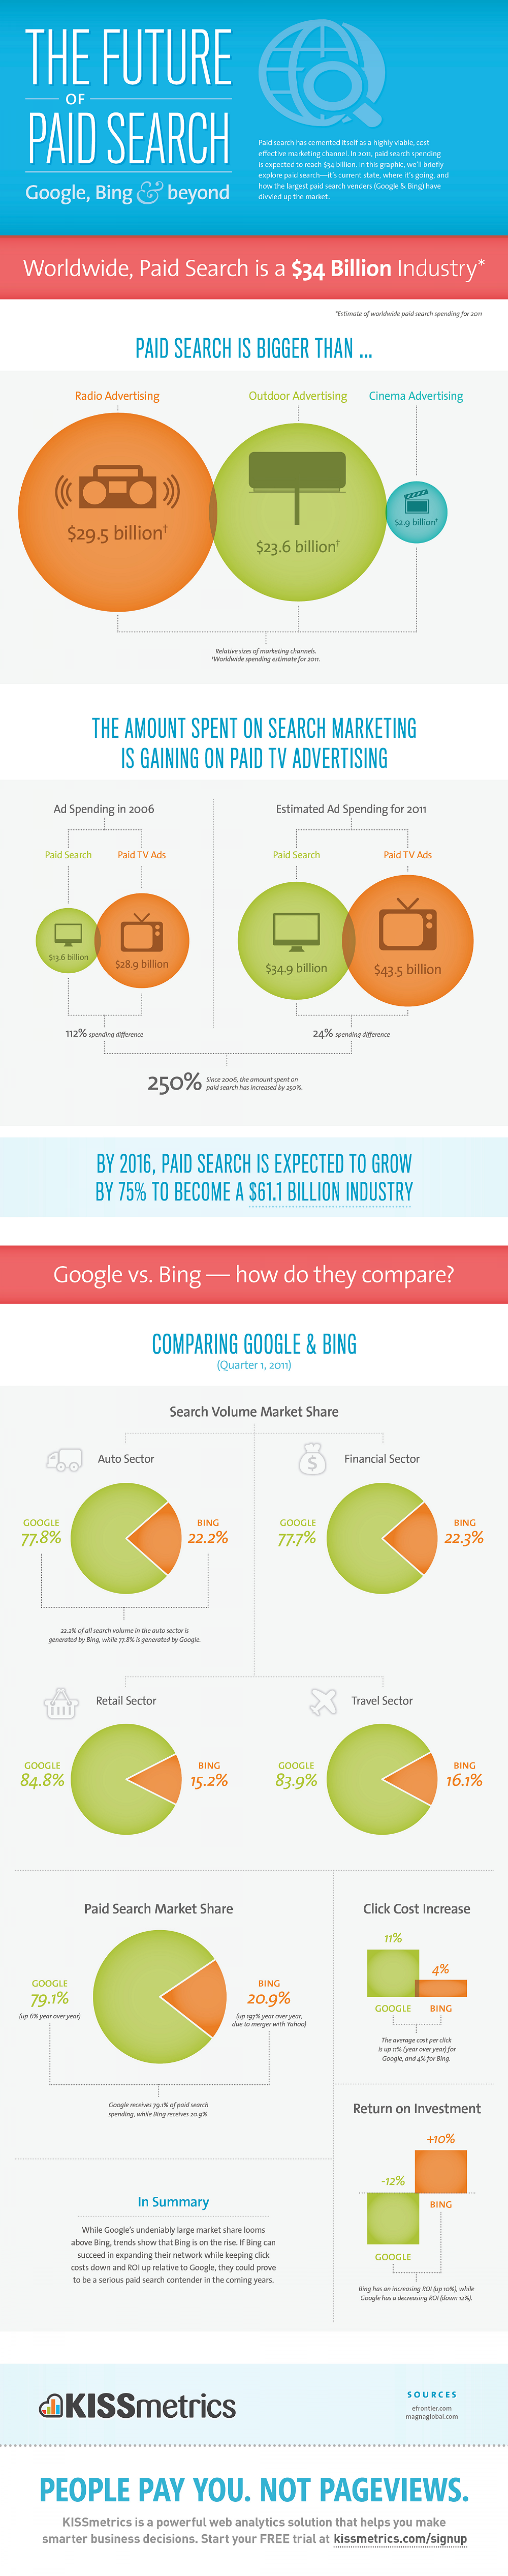 The Future of Paid Search – Google, Bing & Beyond Infographic